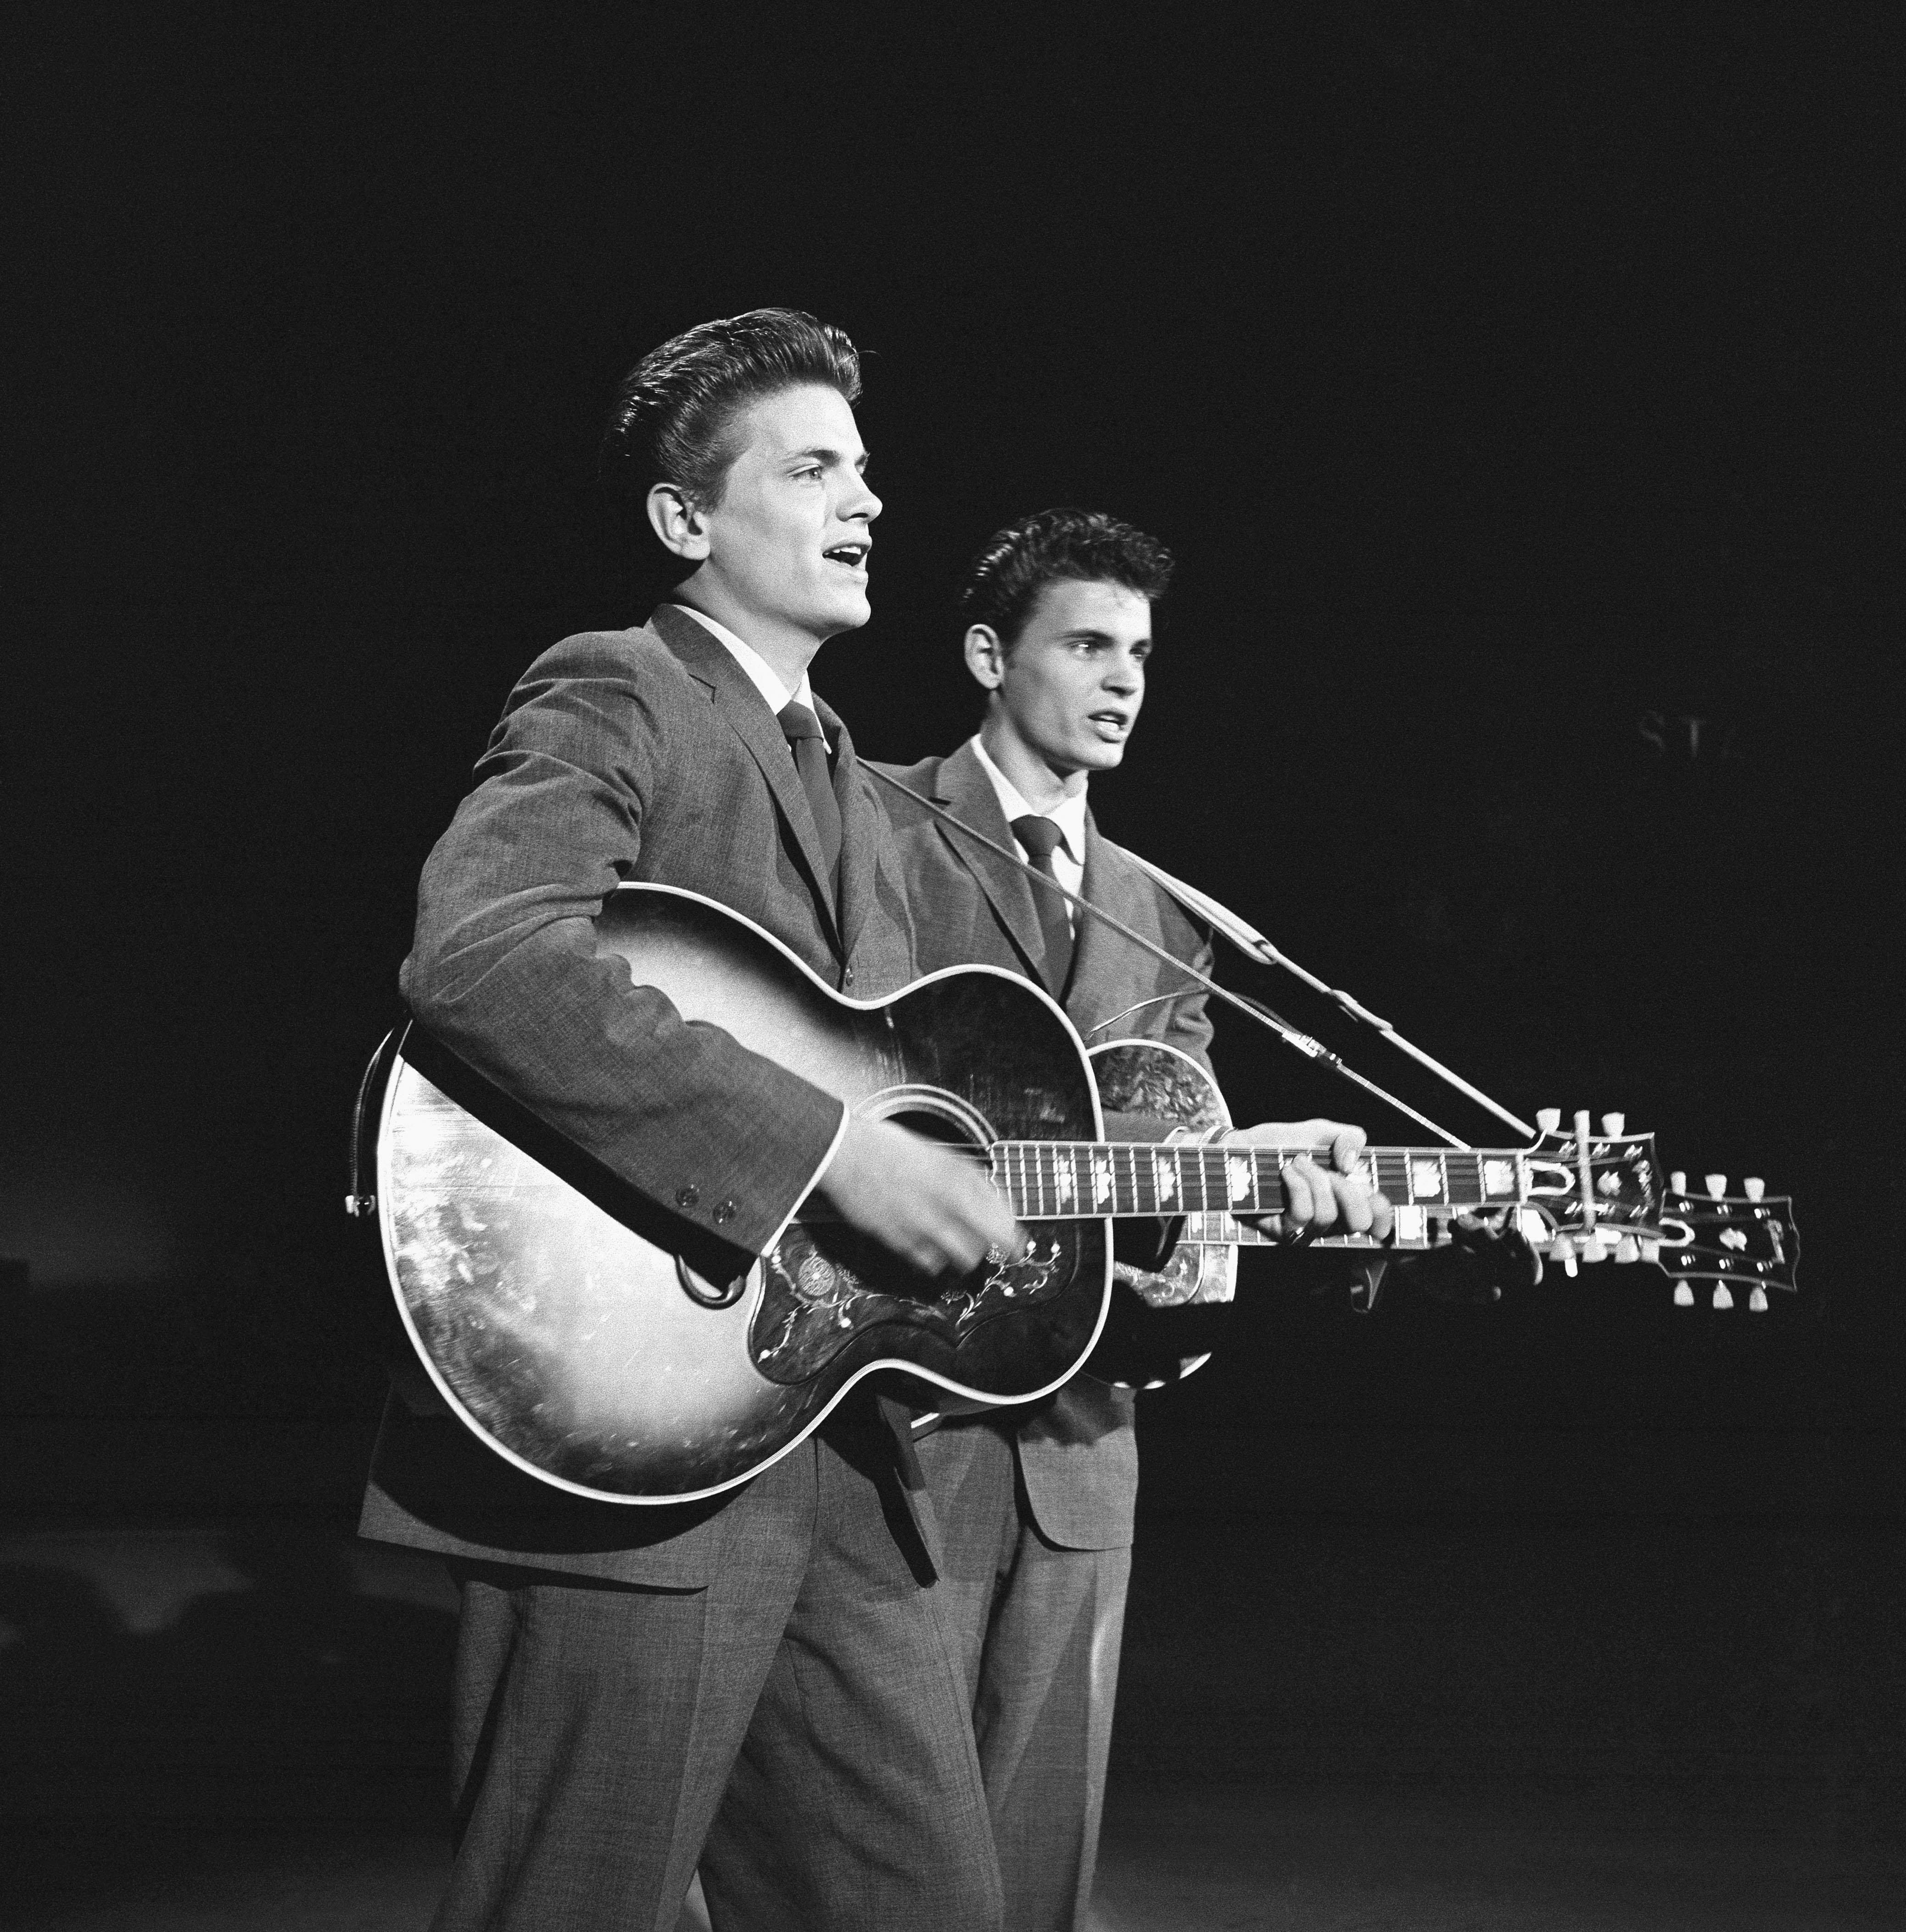 June 30, 1957, New York City, Everly Brothers